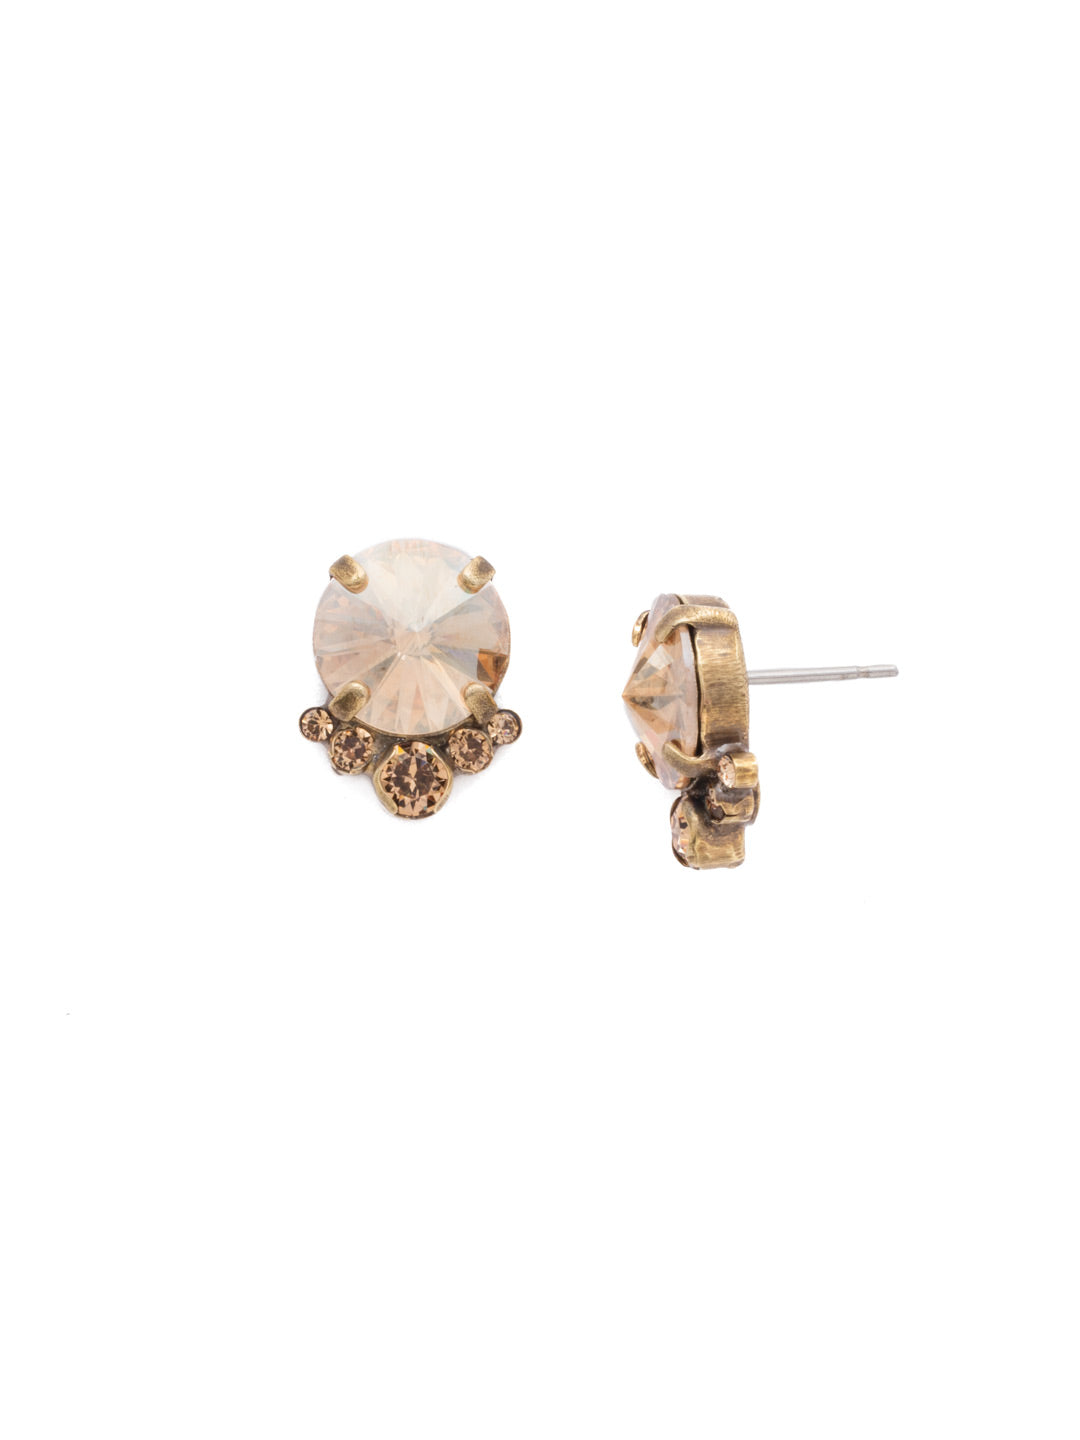 Regal Rounds Stud Earrings - EDH98AGNT